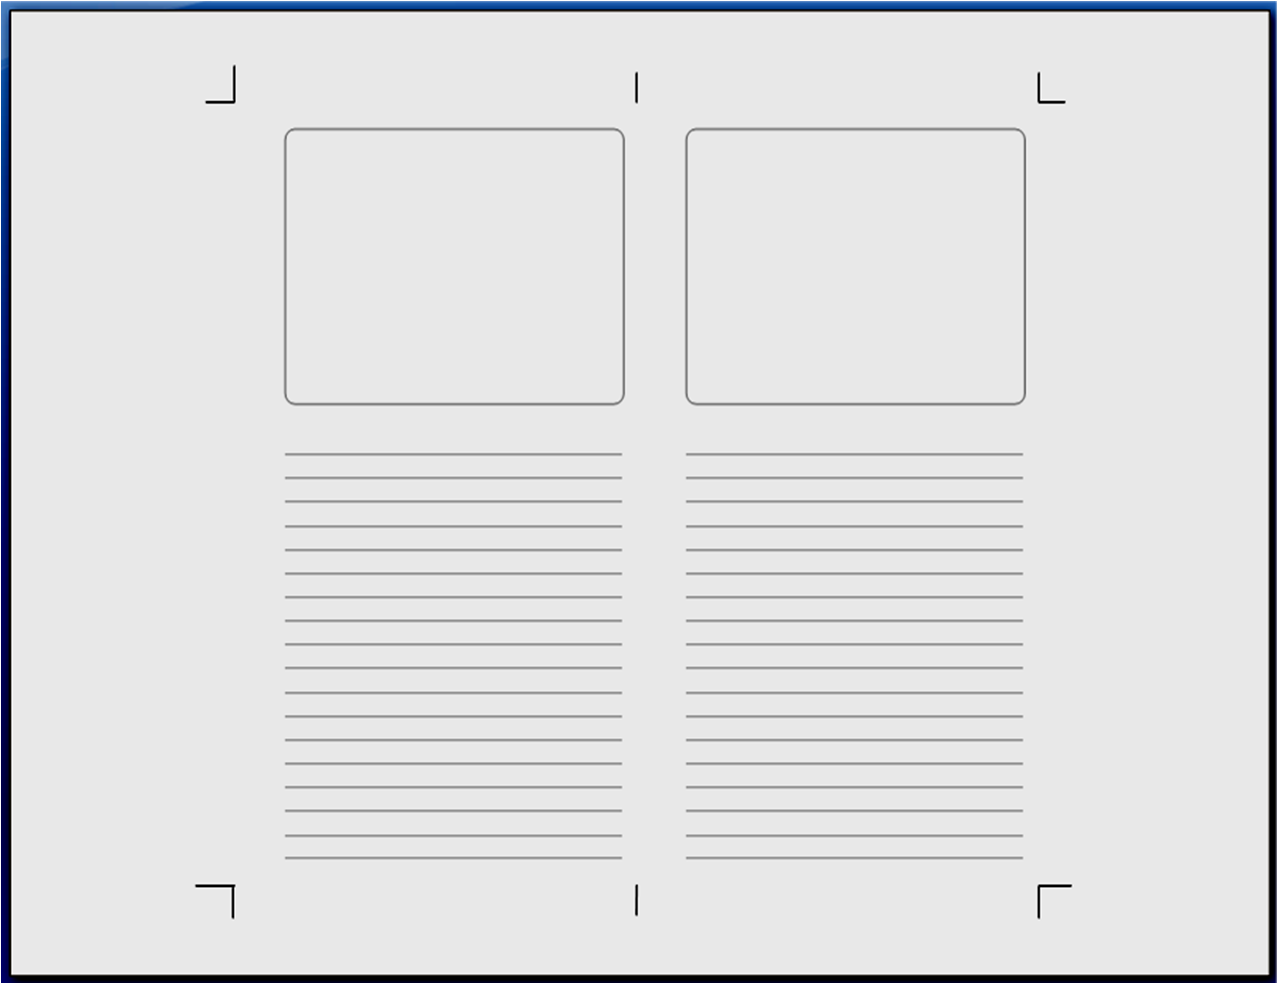 Storyboard Template Word Blank A4